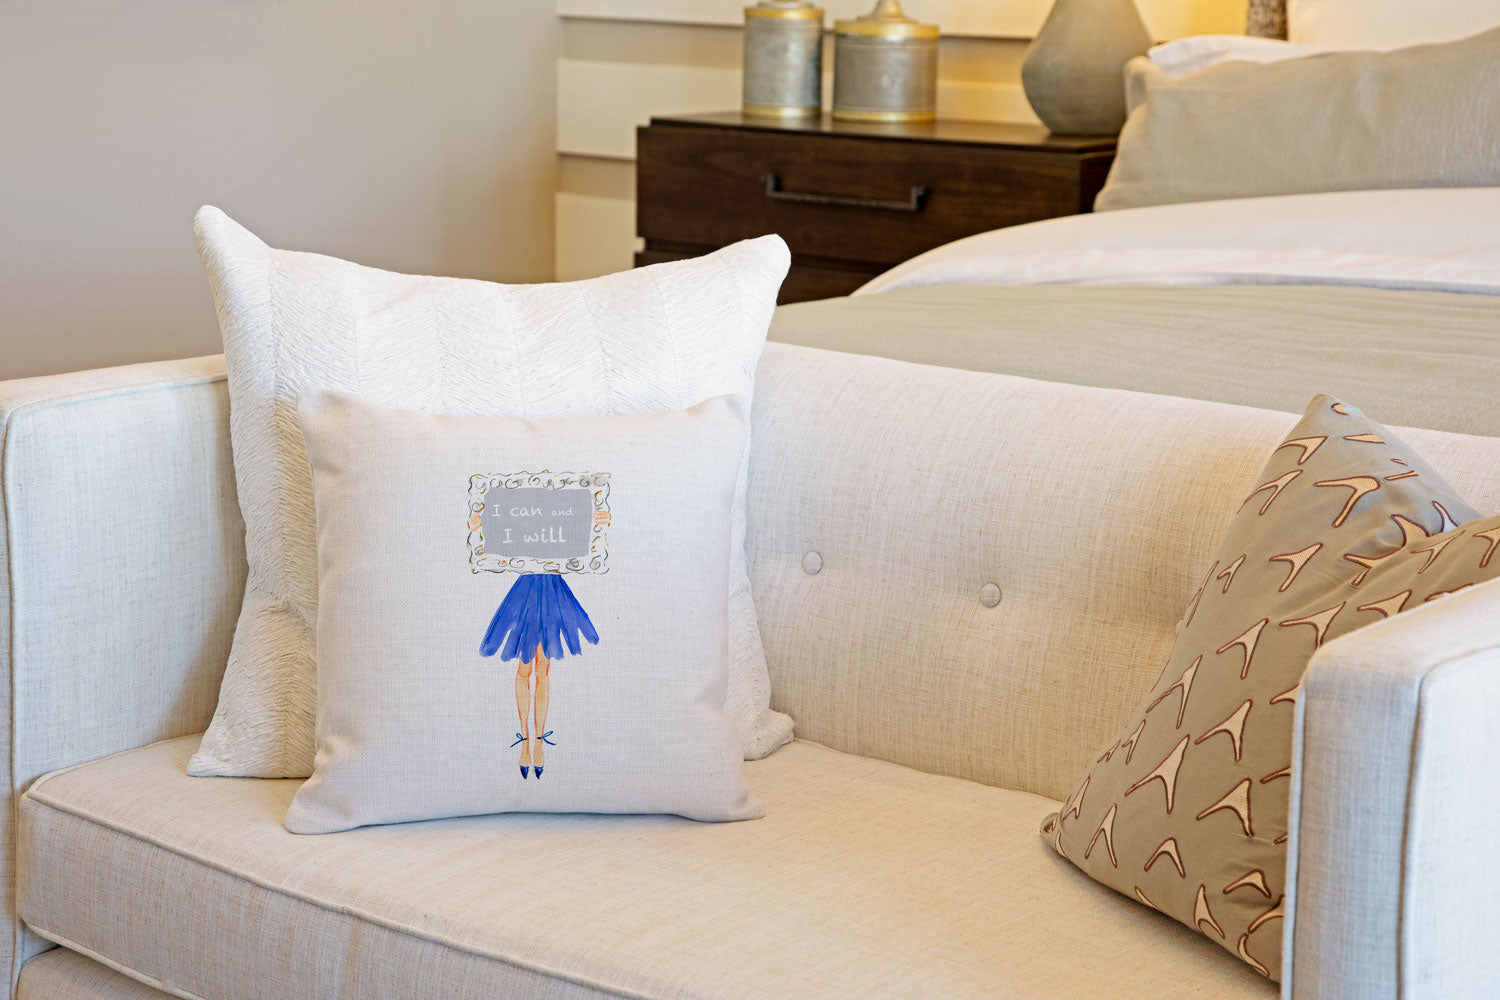 Determination Throw Pillow Cover - Fashion Illustrations Throw Pillow Cover Collection-Di Lewis